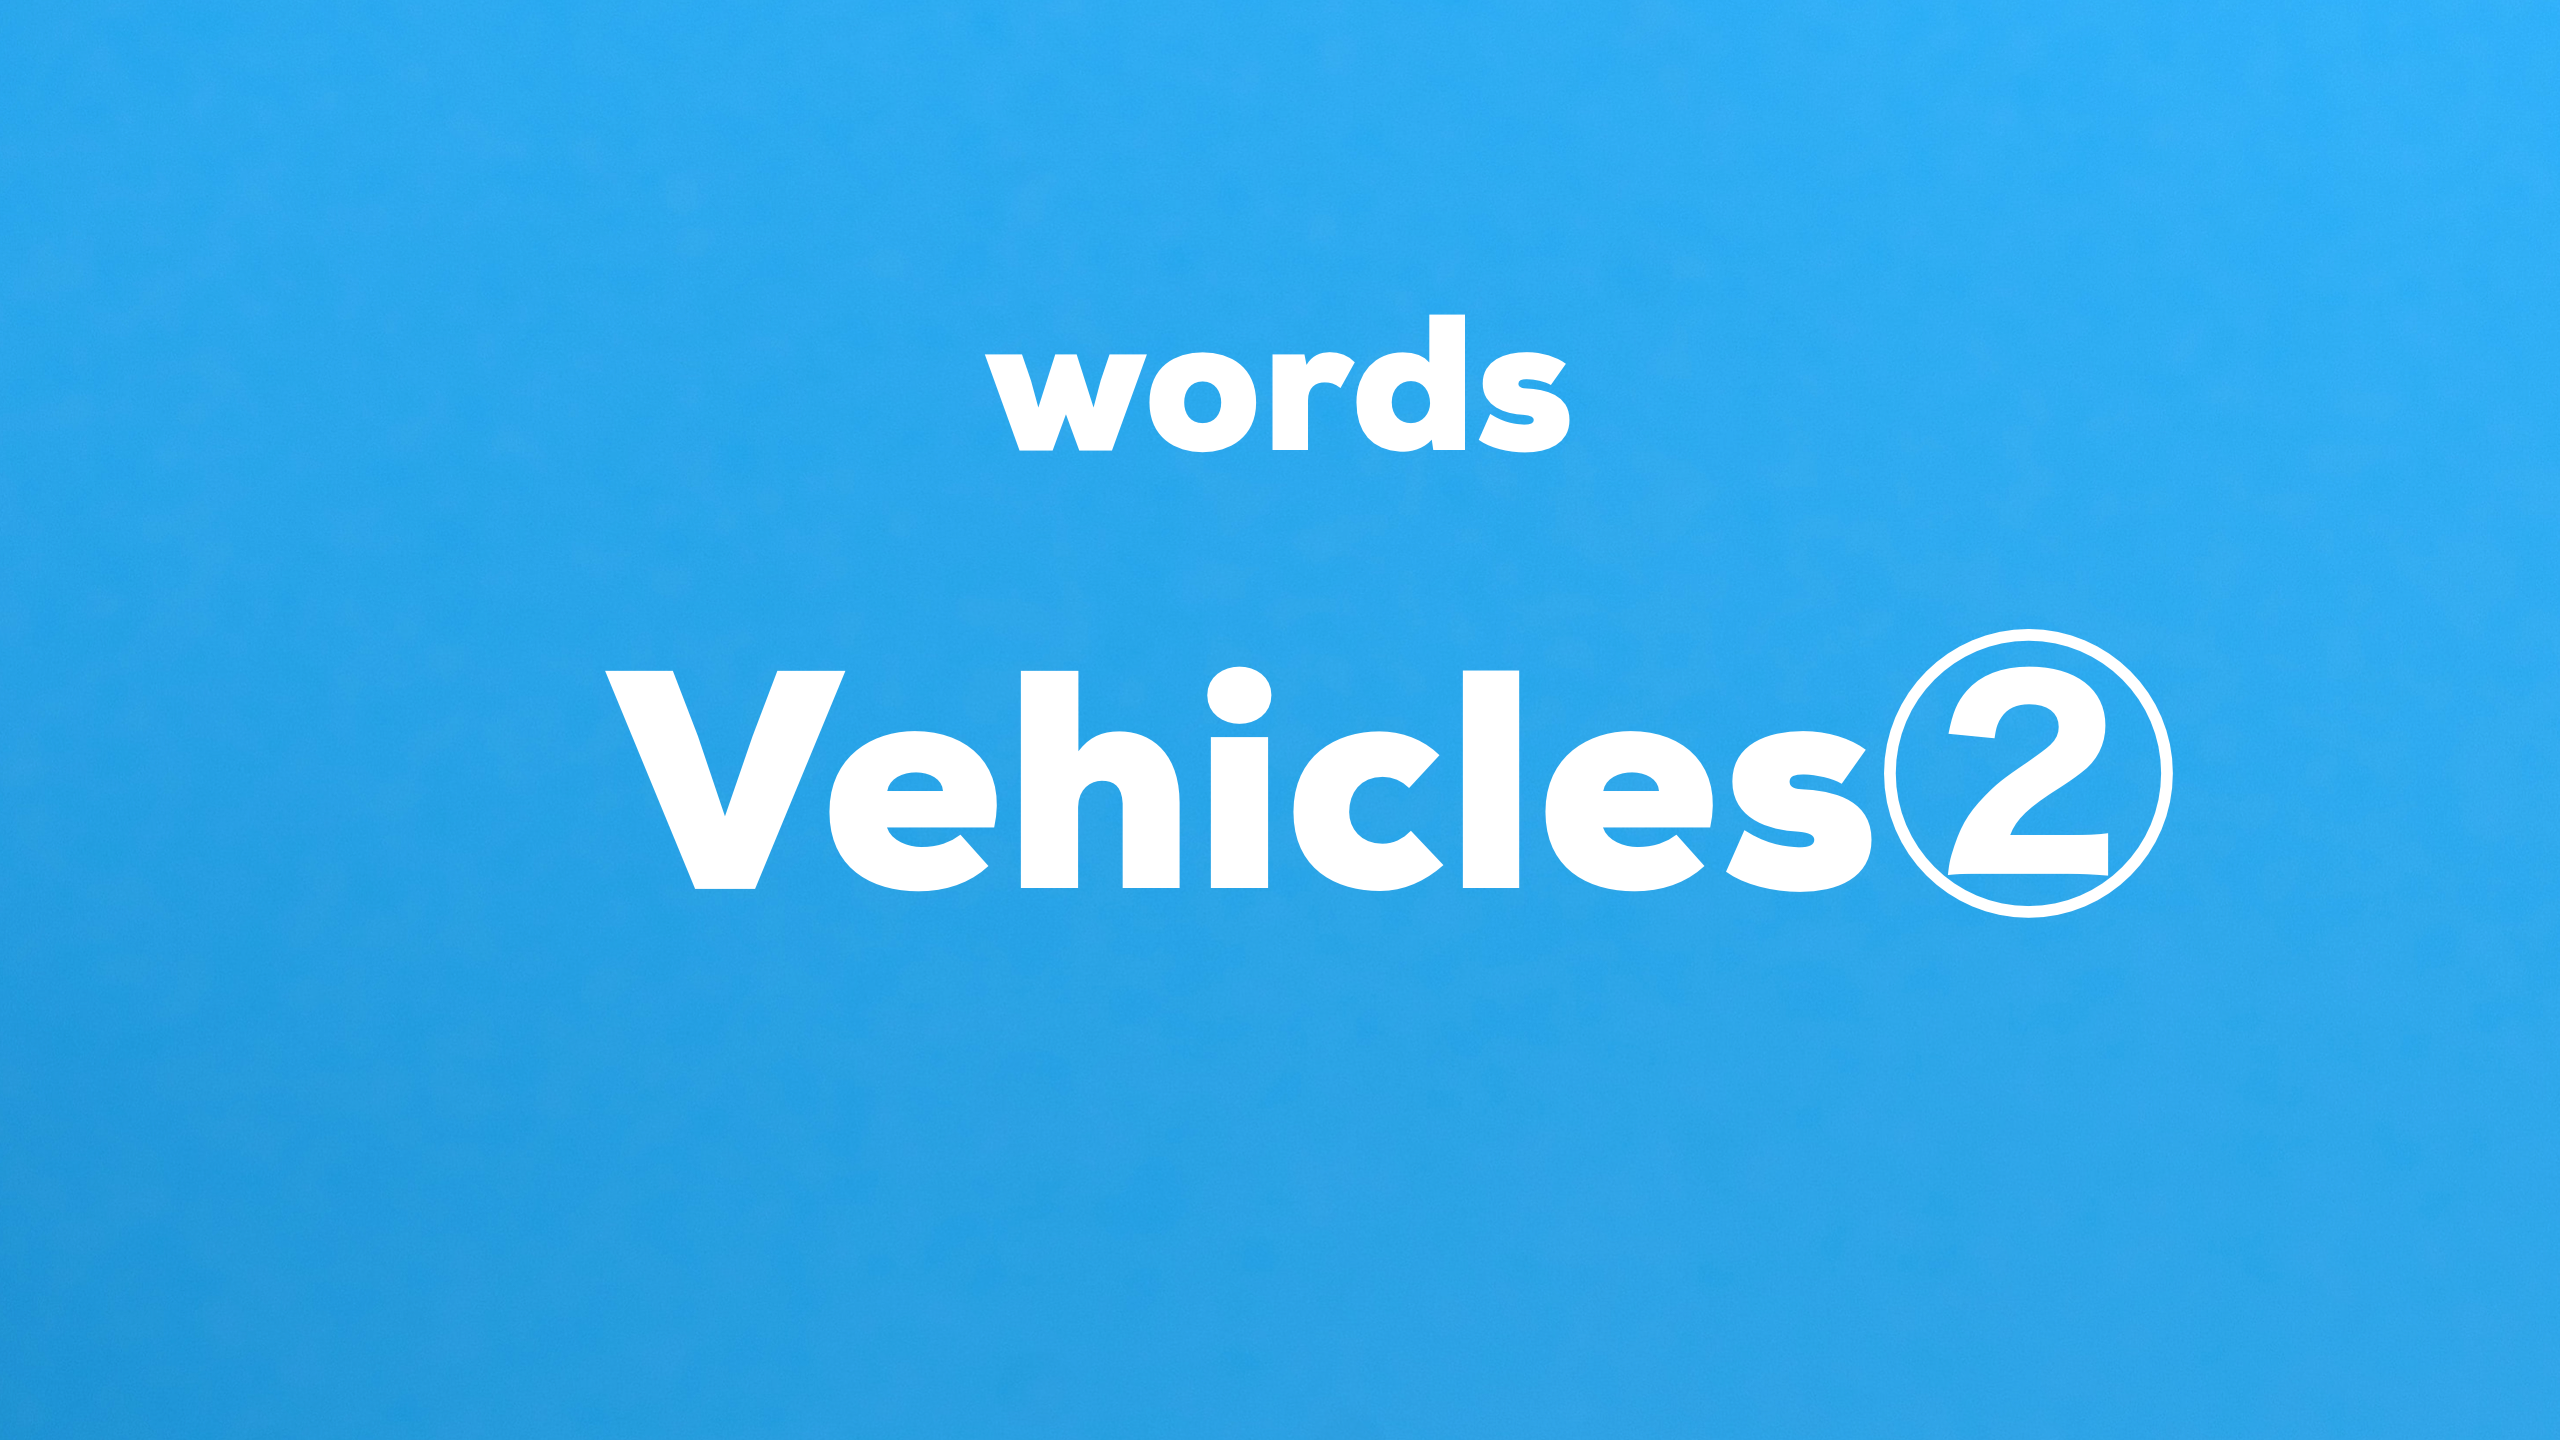 Words Vehicles ② 難易度☆